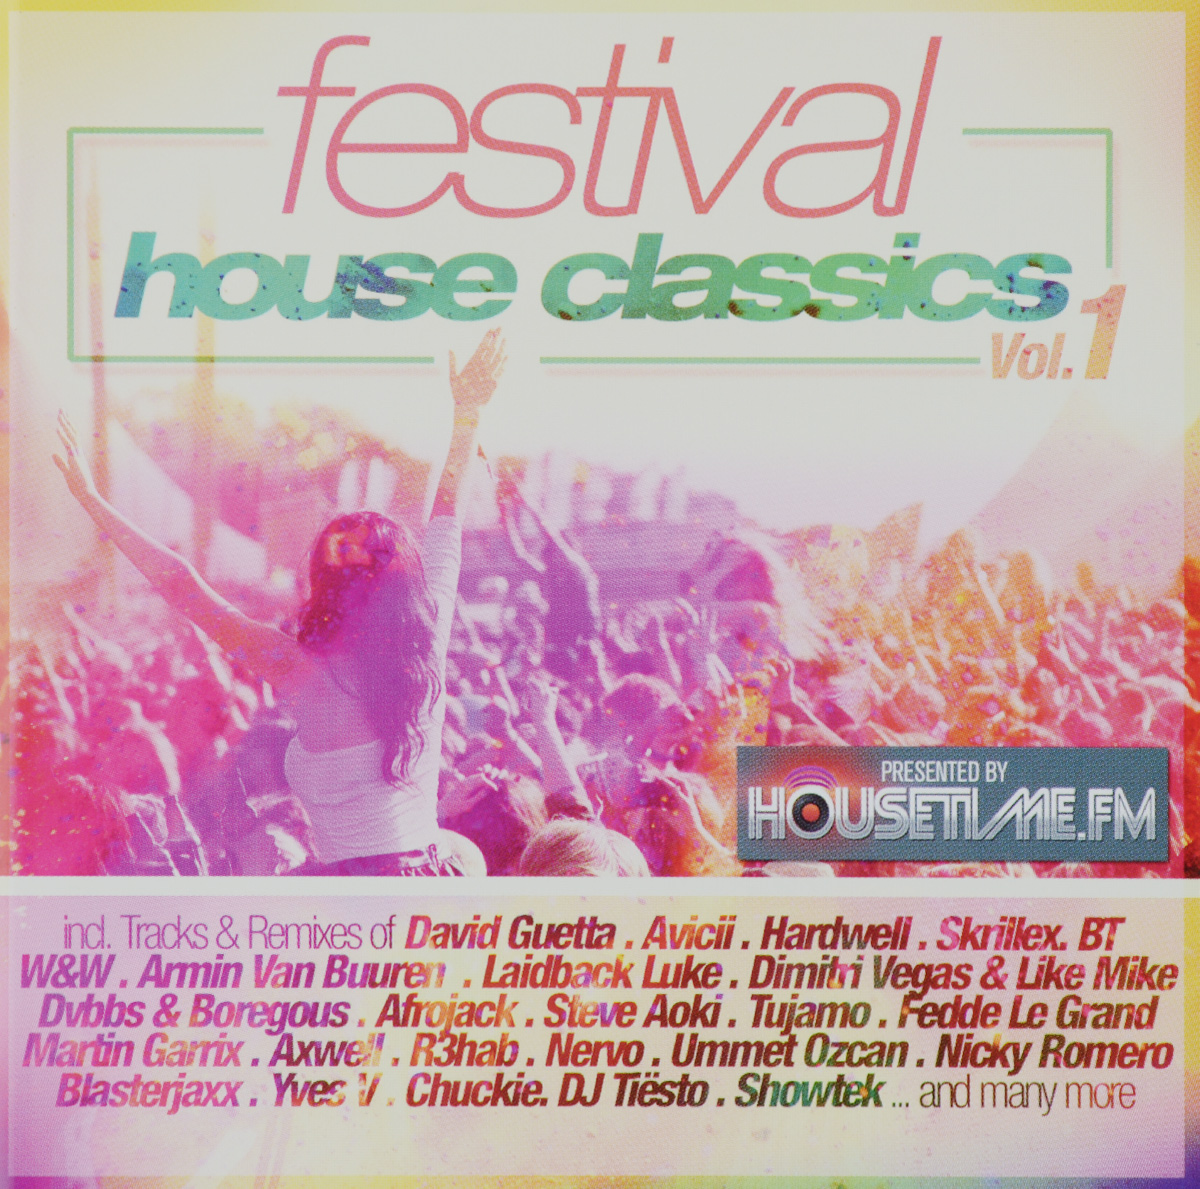 Hardwell Festival House Classics Volume 1 2 CD